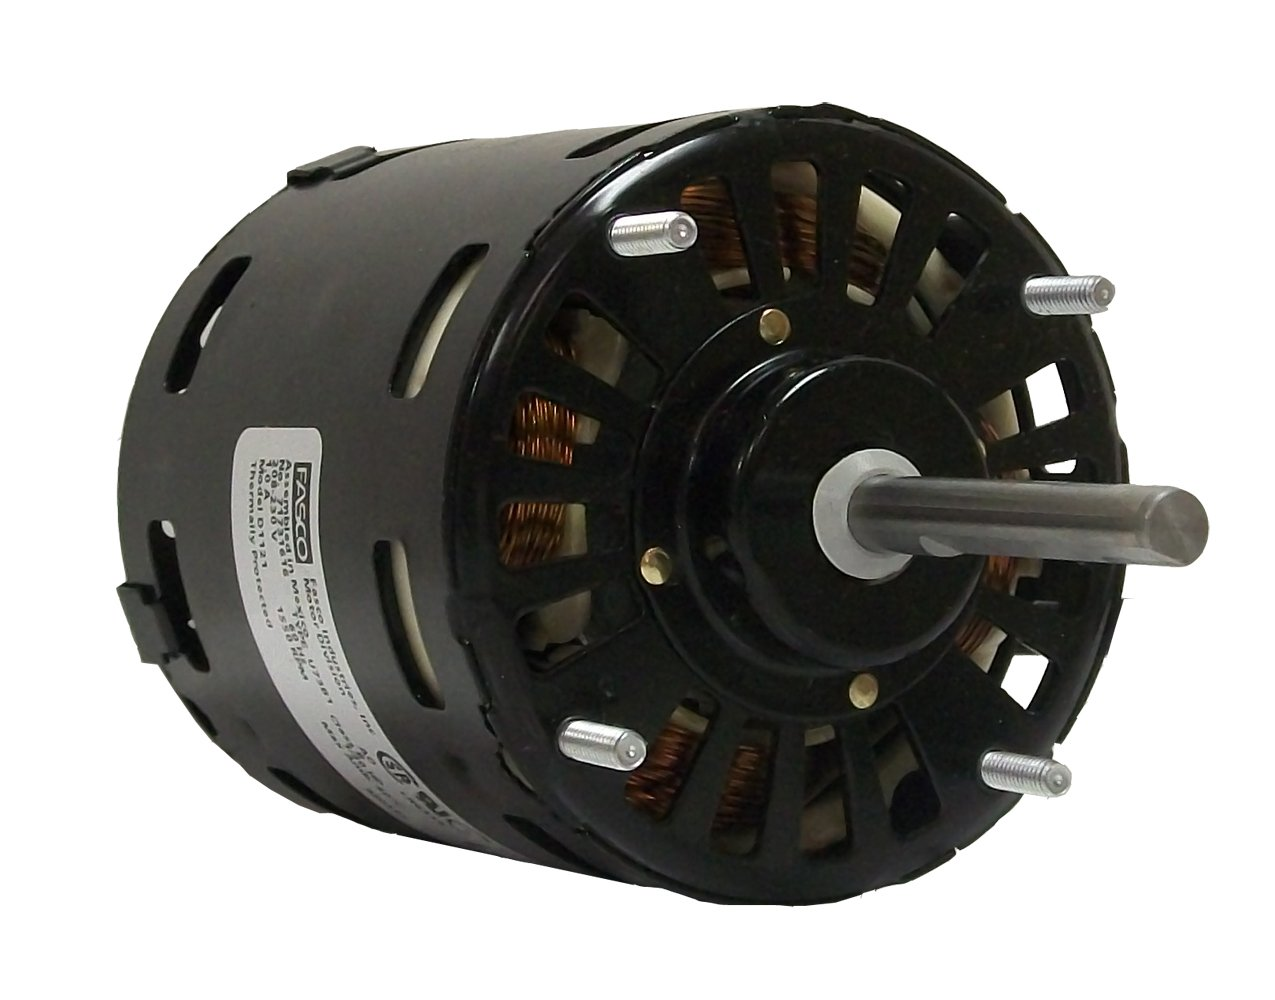 Fasco D1120 3.3-Inch Diameter Shaded Pole Motor, 1/20 HP, 115 Volts, 1500 RPM, 1 Speed, 2.1 Amps, CW Rotation, Sleeve Bearing by Fasco